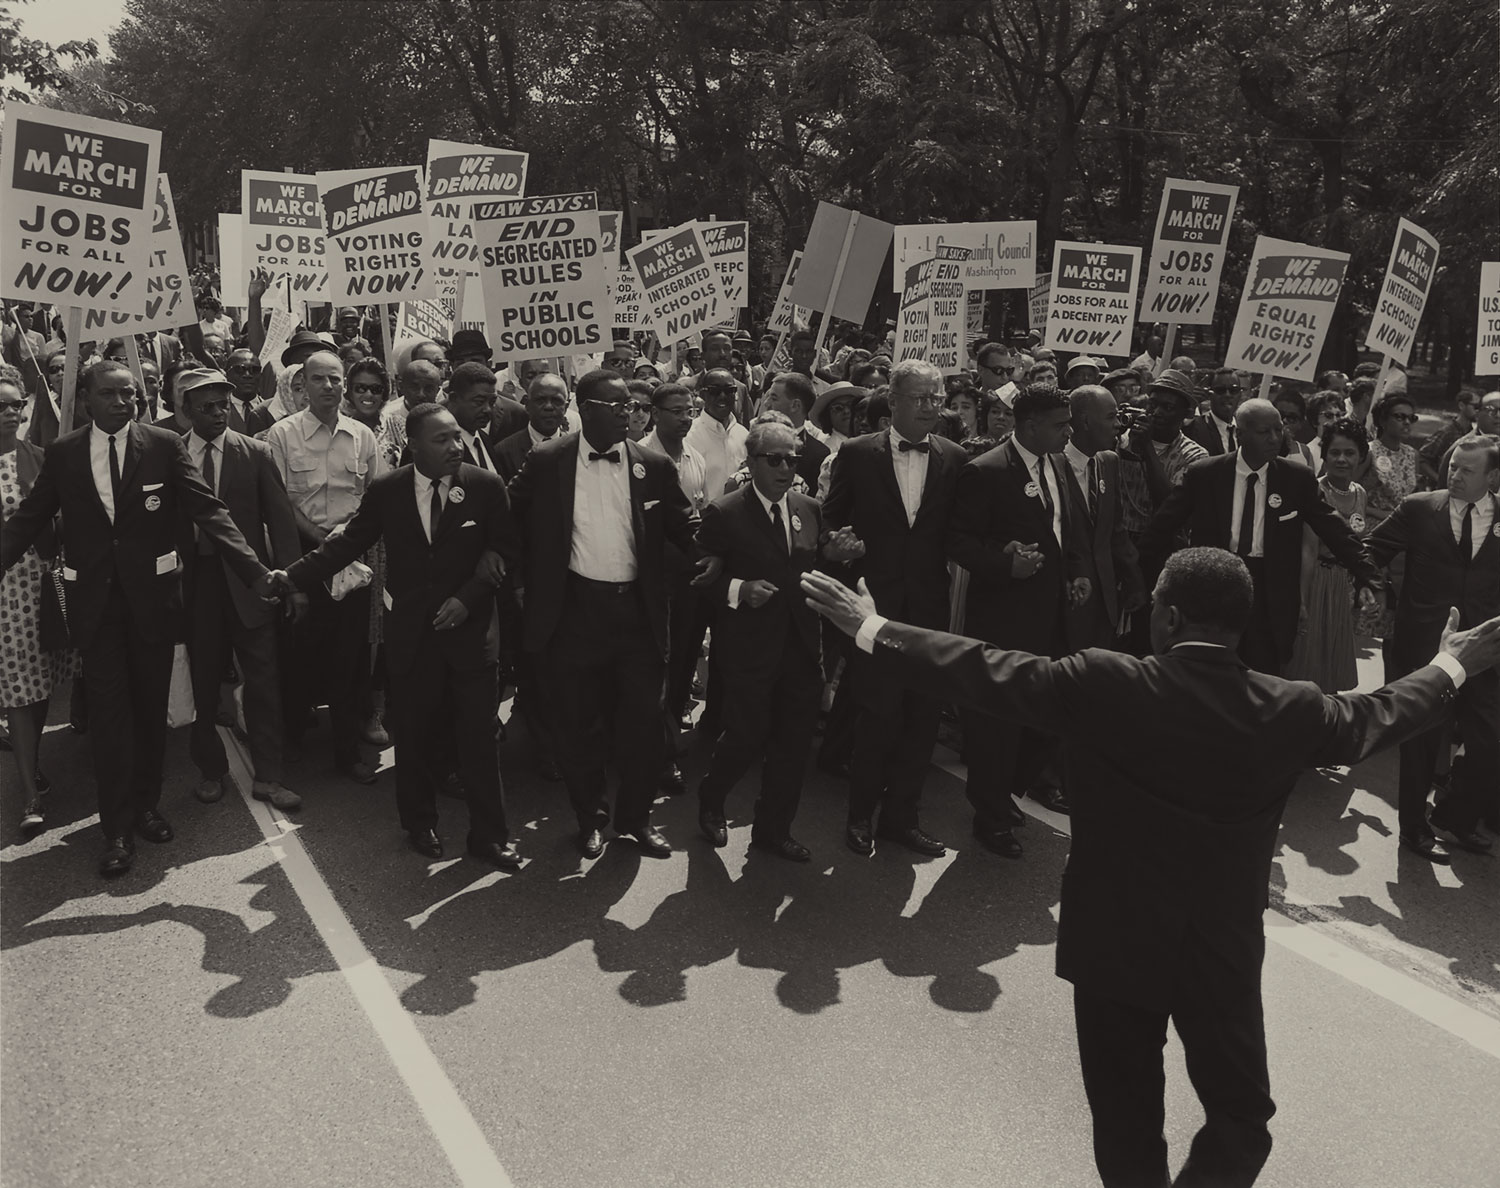 A group of people marching during the March on Washington